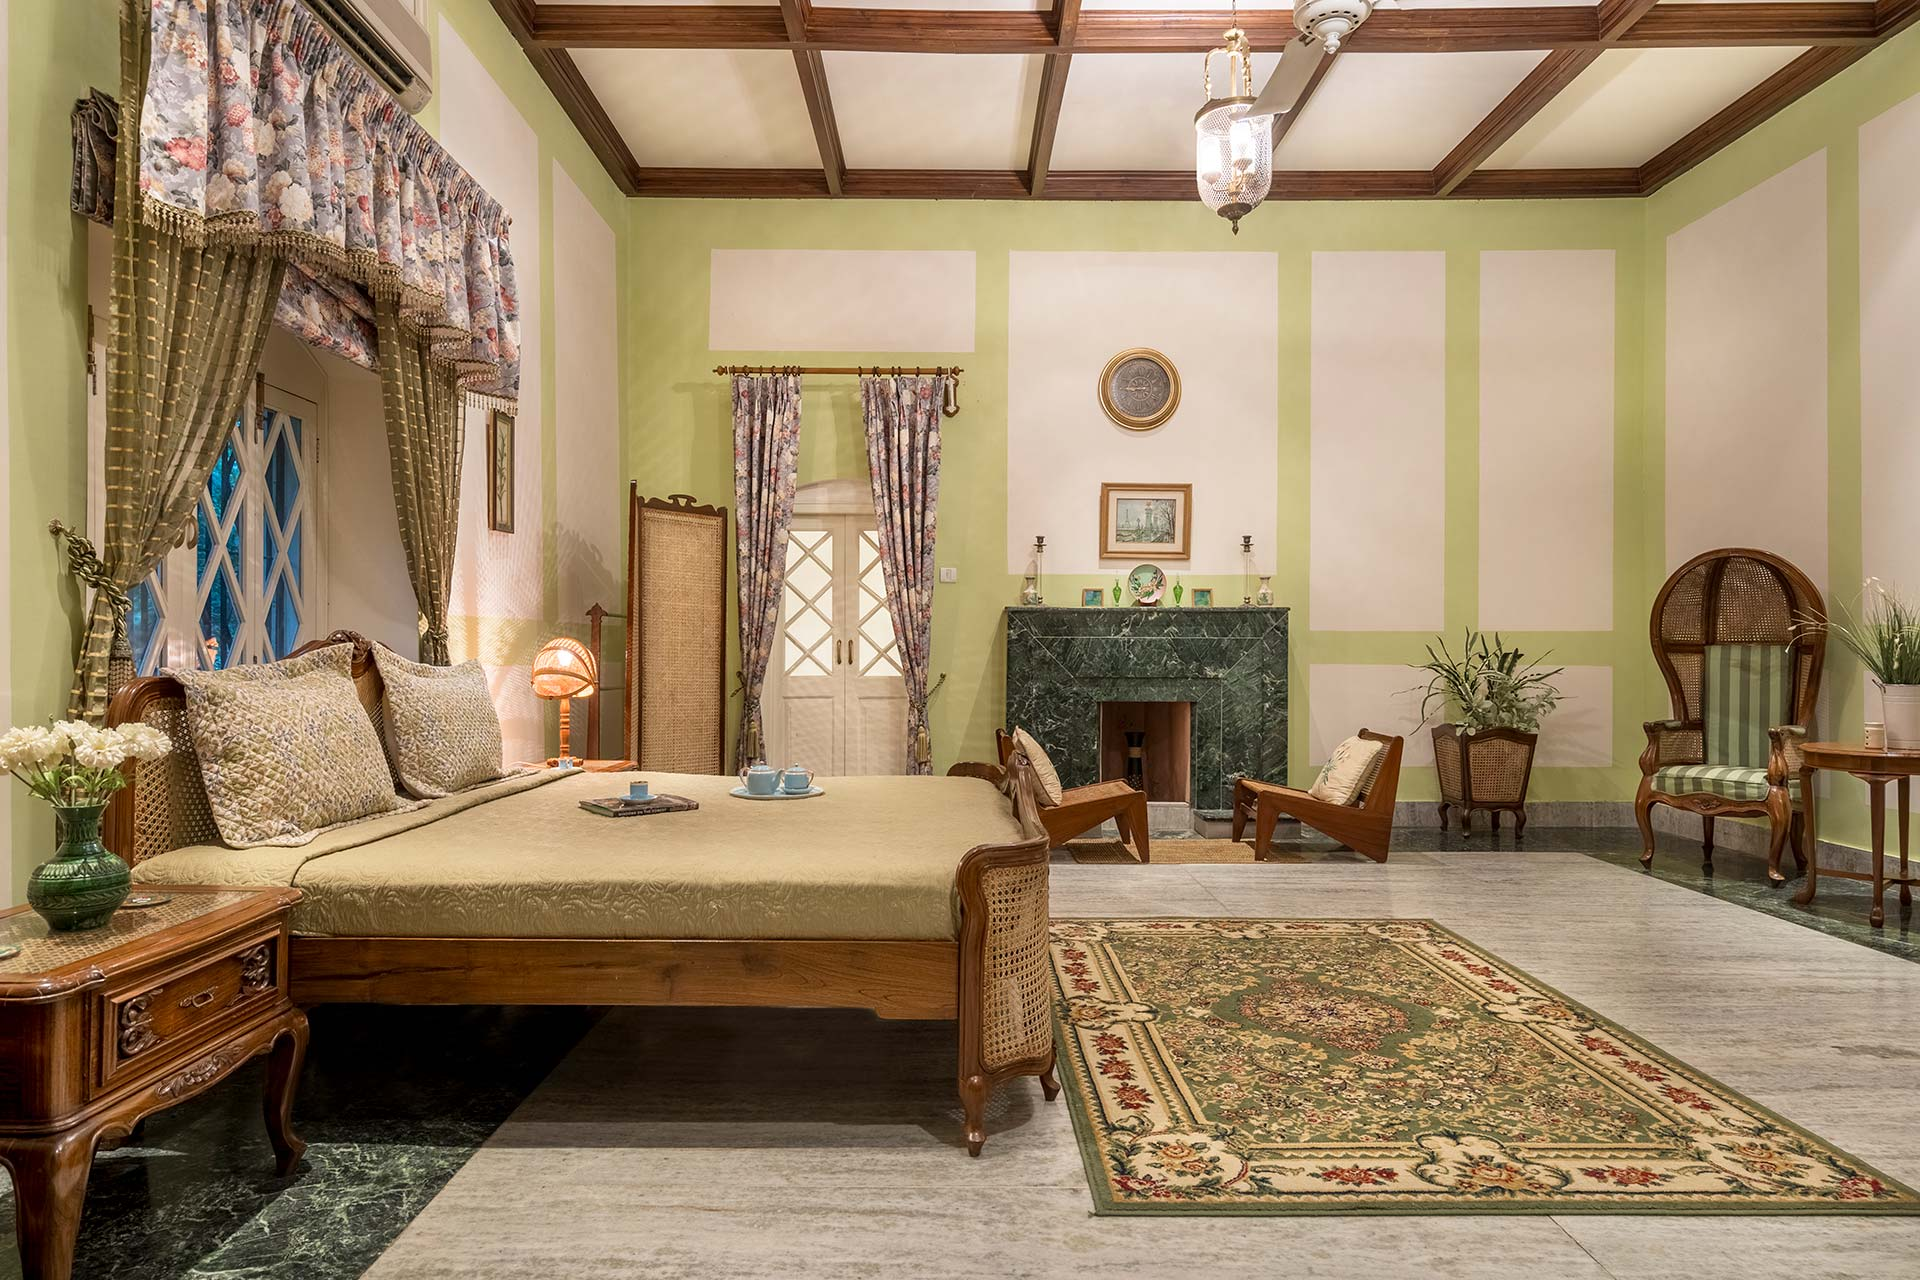 Normandy House 3br Disinfected Before Every Stay Villas For Rent In Dehradun Uttarakhand India